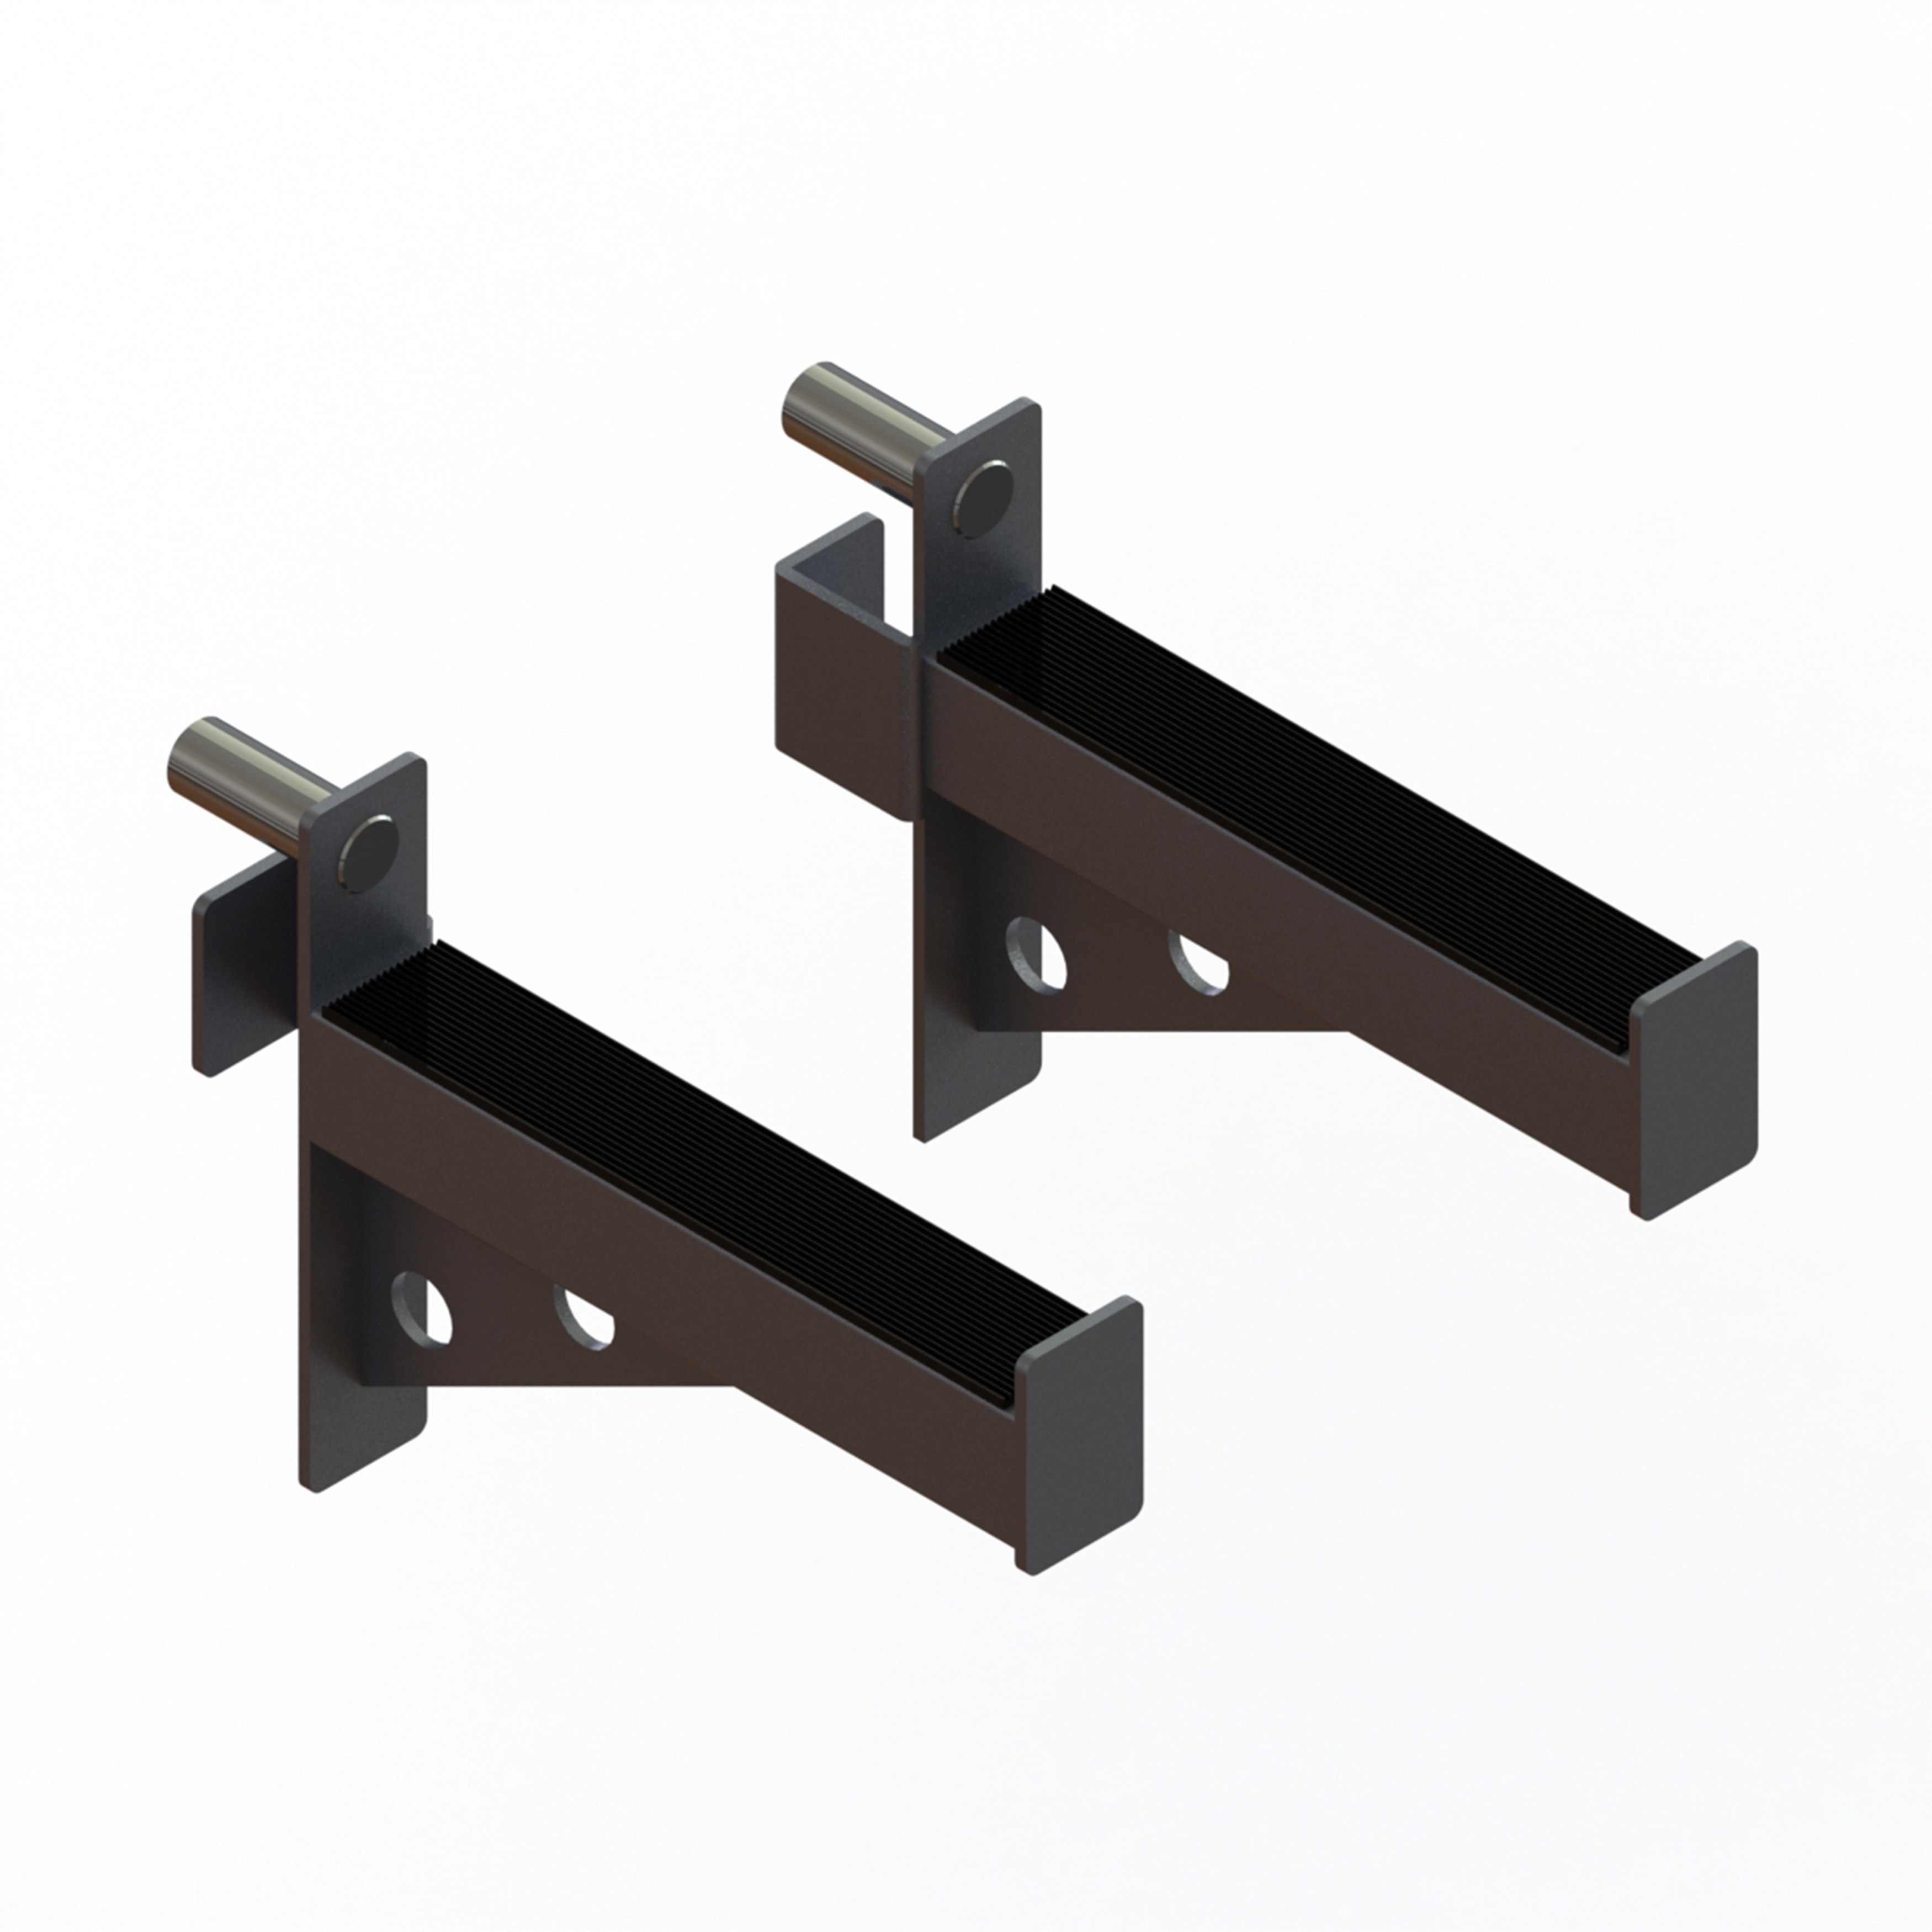 Valor MB-F 2.0 inch Safety Bar Extension for BD 7 NEW